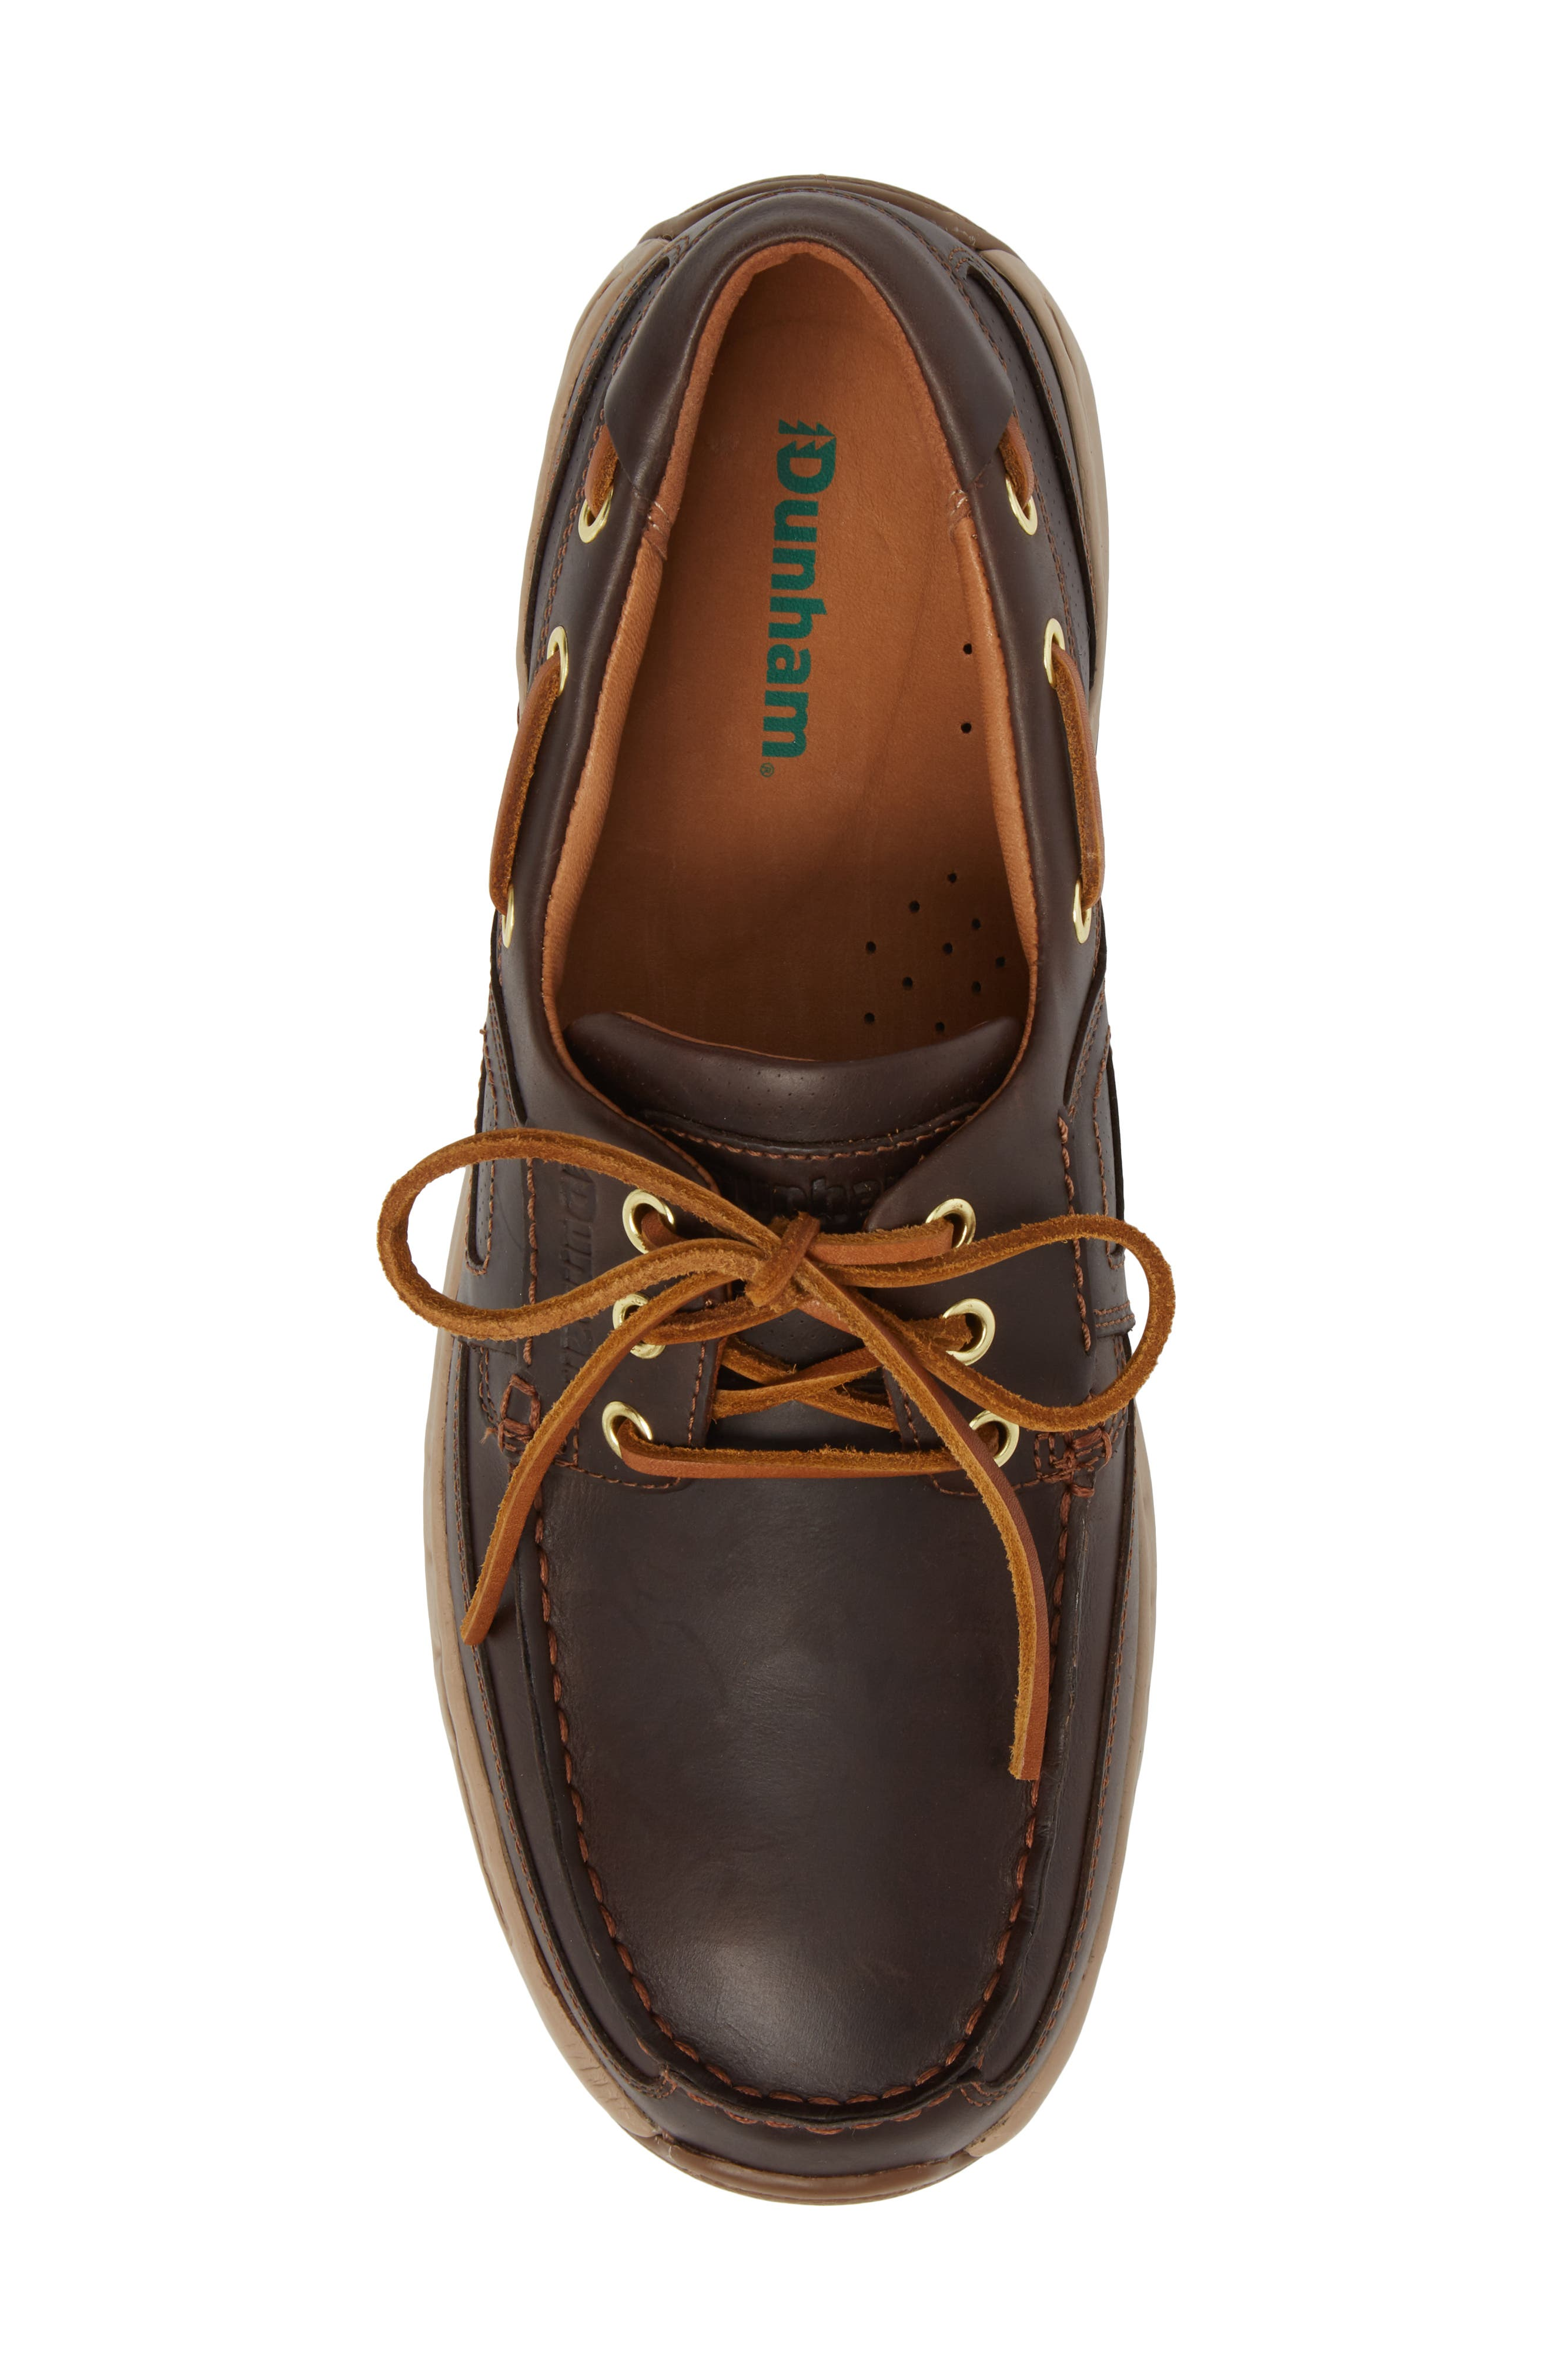 LTD Water Resistant Boat Shoe,                             Alternate thumbnail 5, color,                             TAN LEATHER